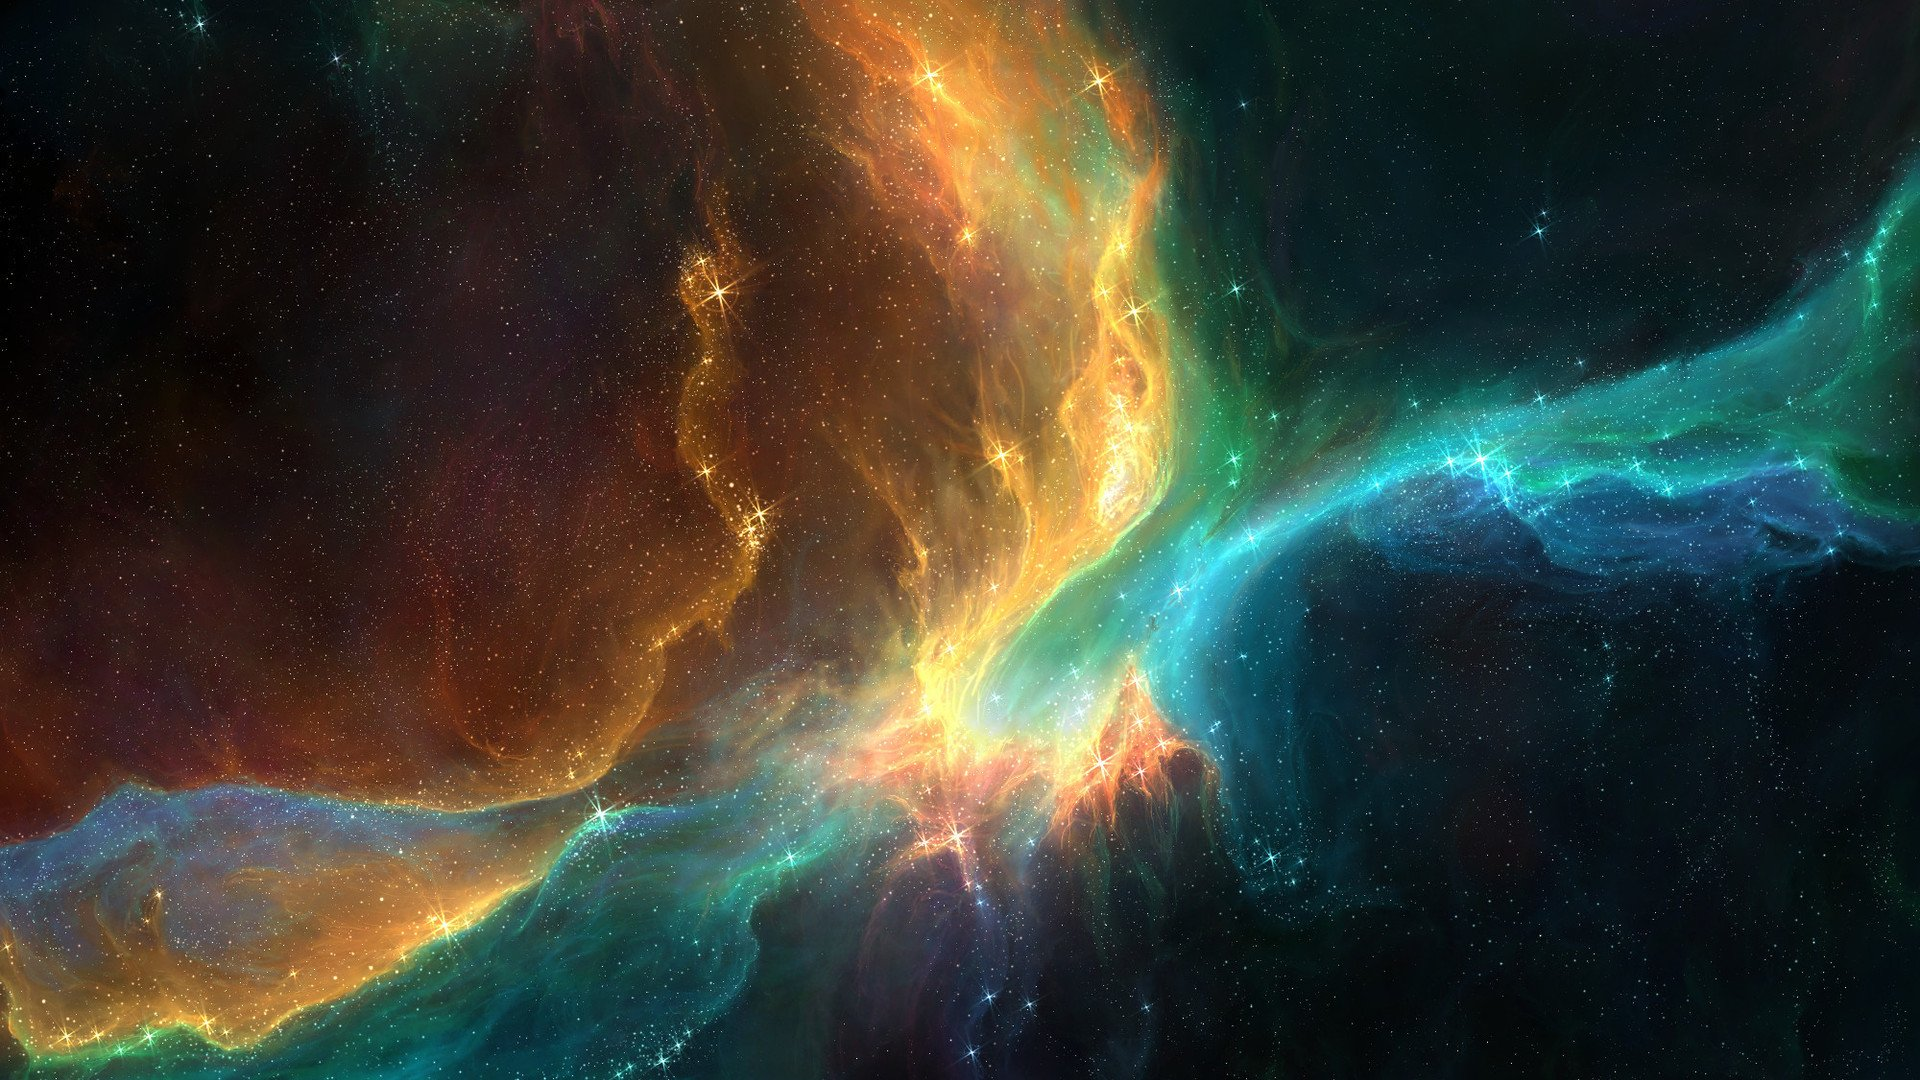 Space Wallpaper Hd wallpaper   846887 1920x1080